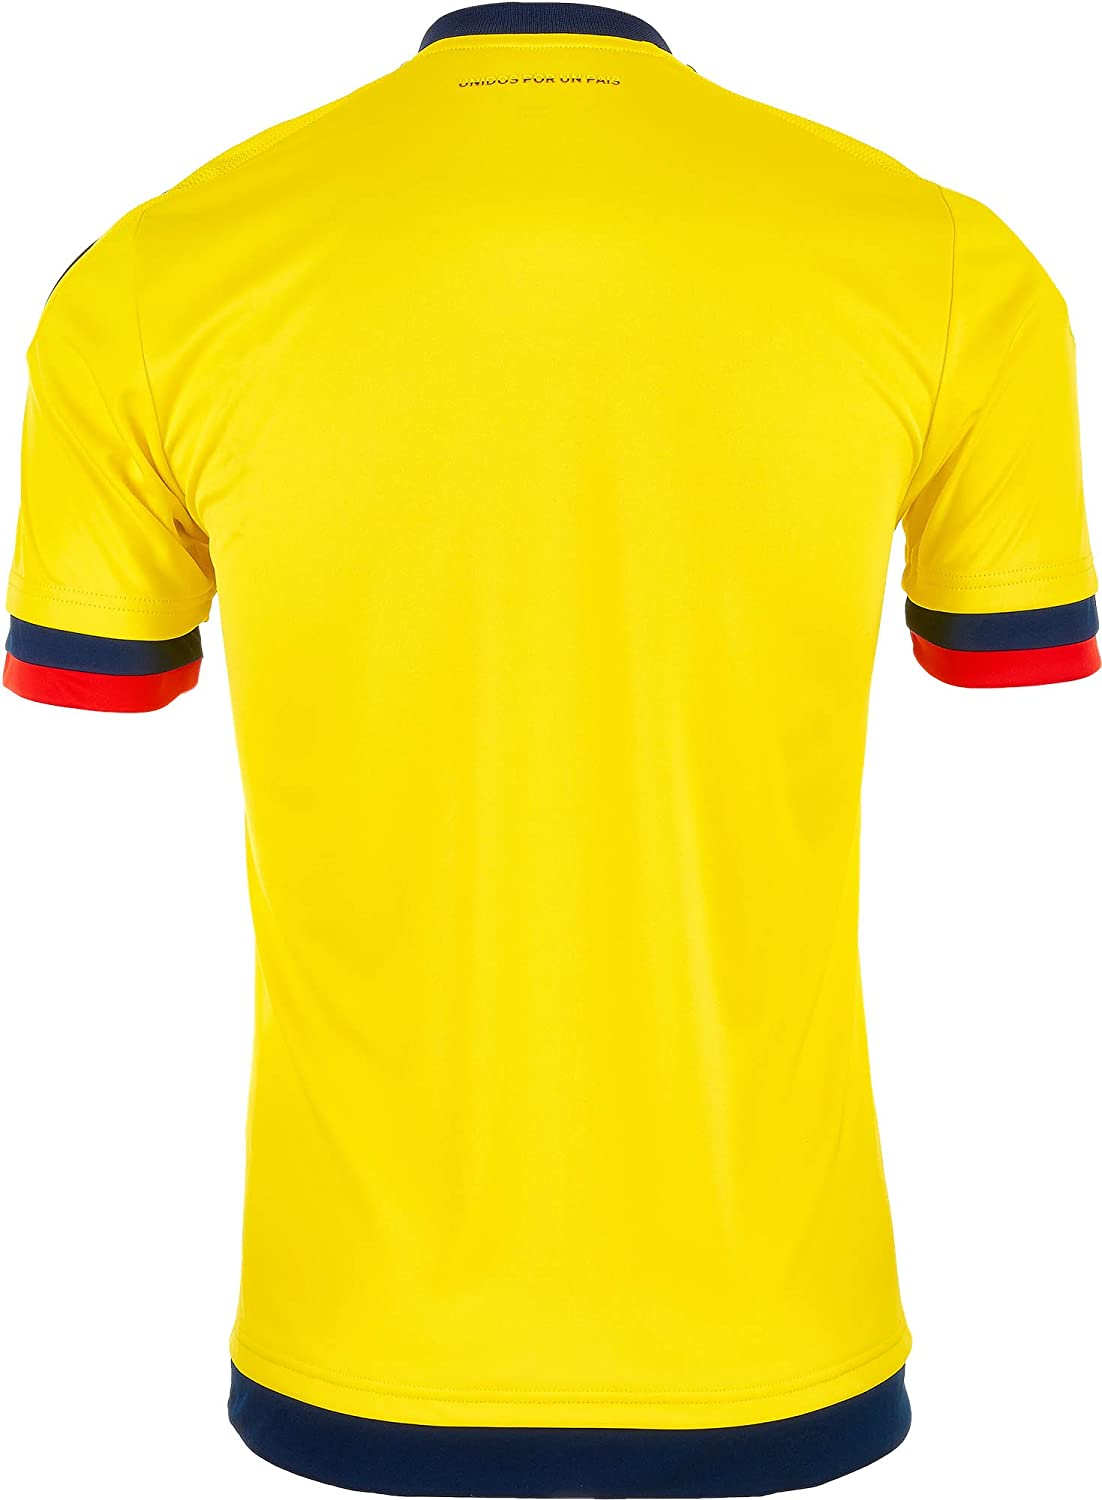 087c5add5c2 Amazon.com  adidas Colombia Home Soccer Jersey